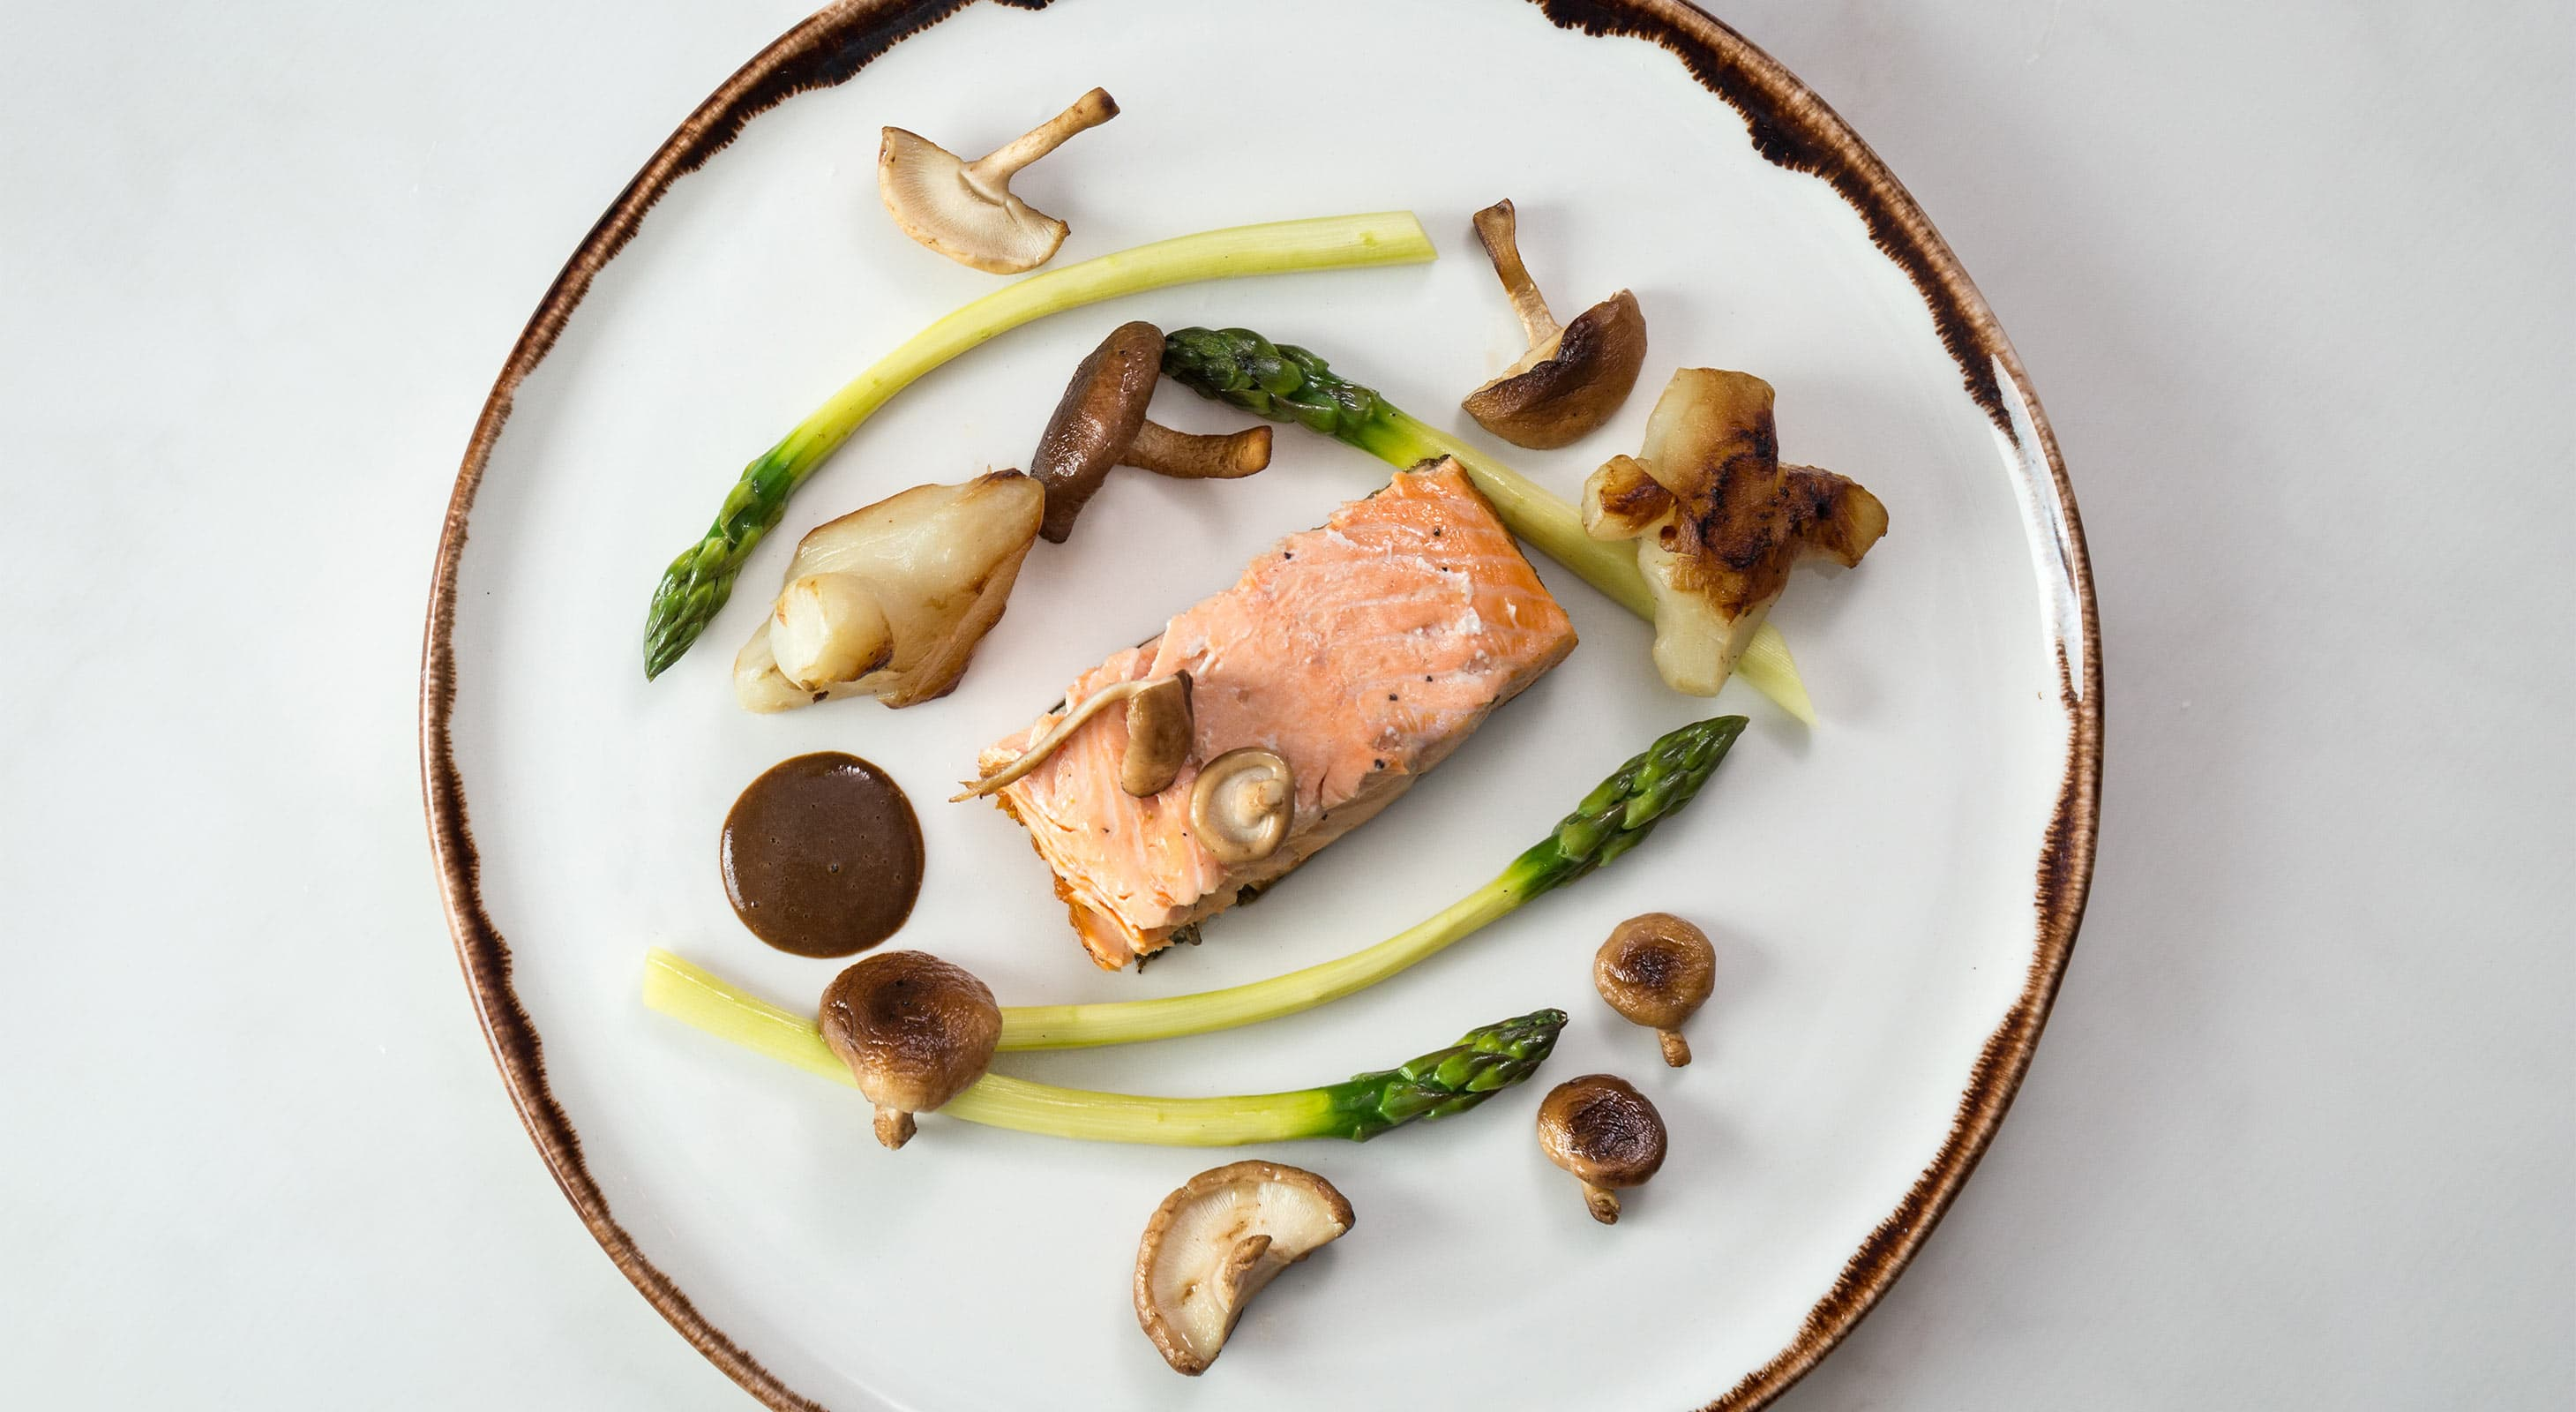 Salmon with asparagus and mushrooms